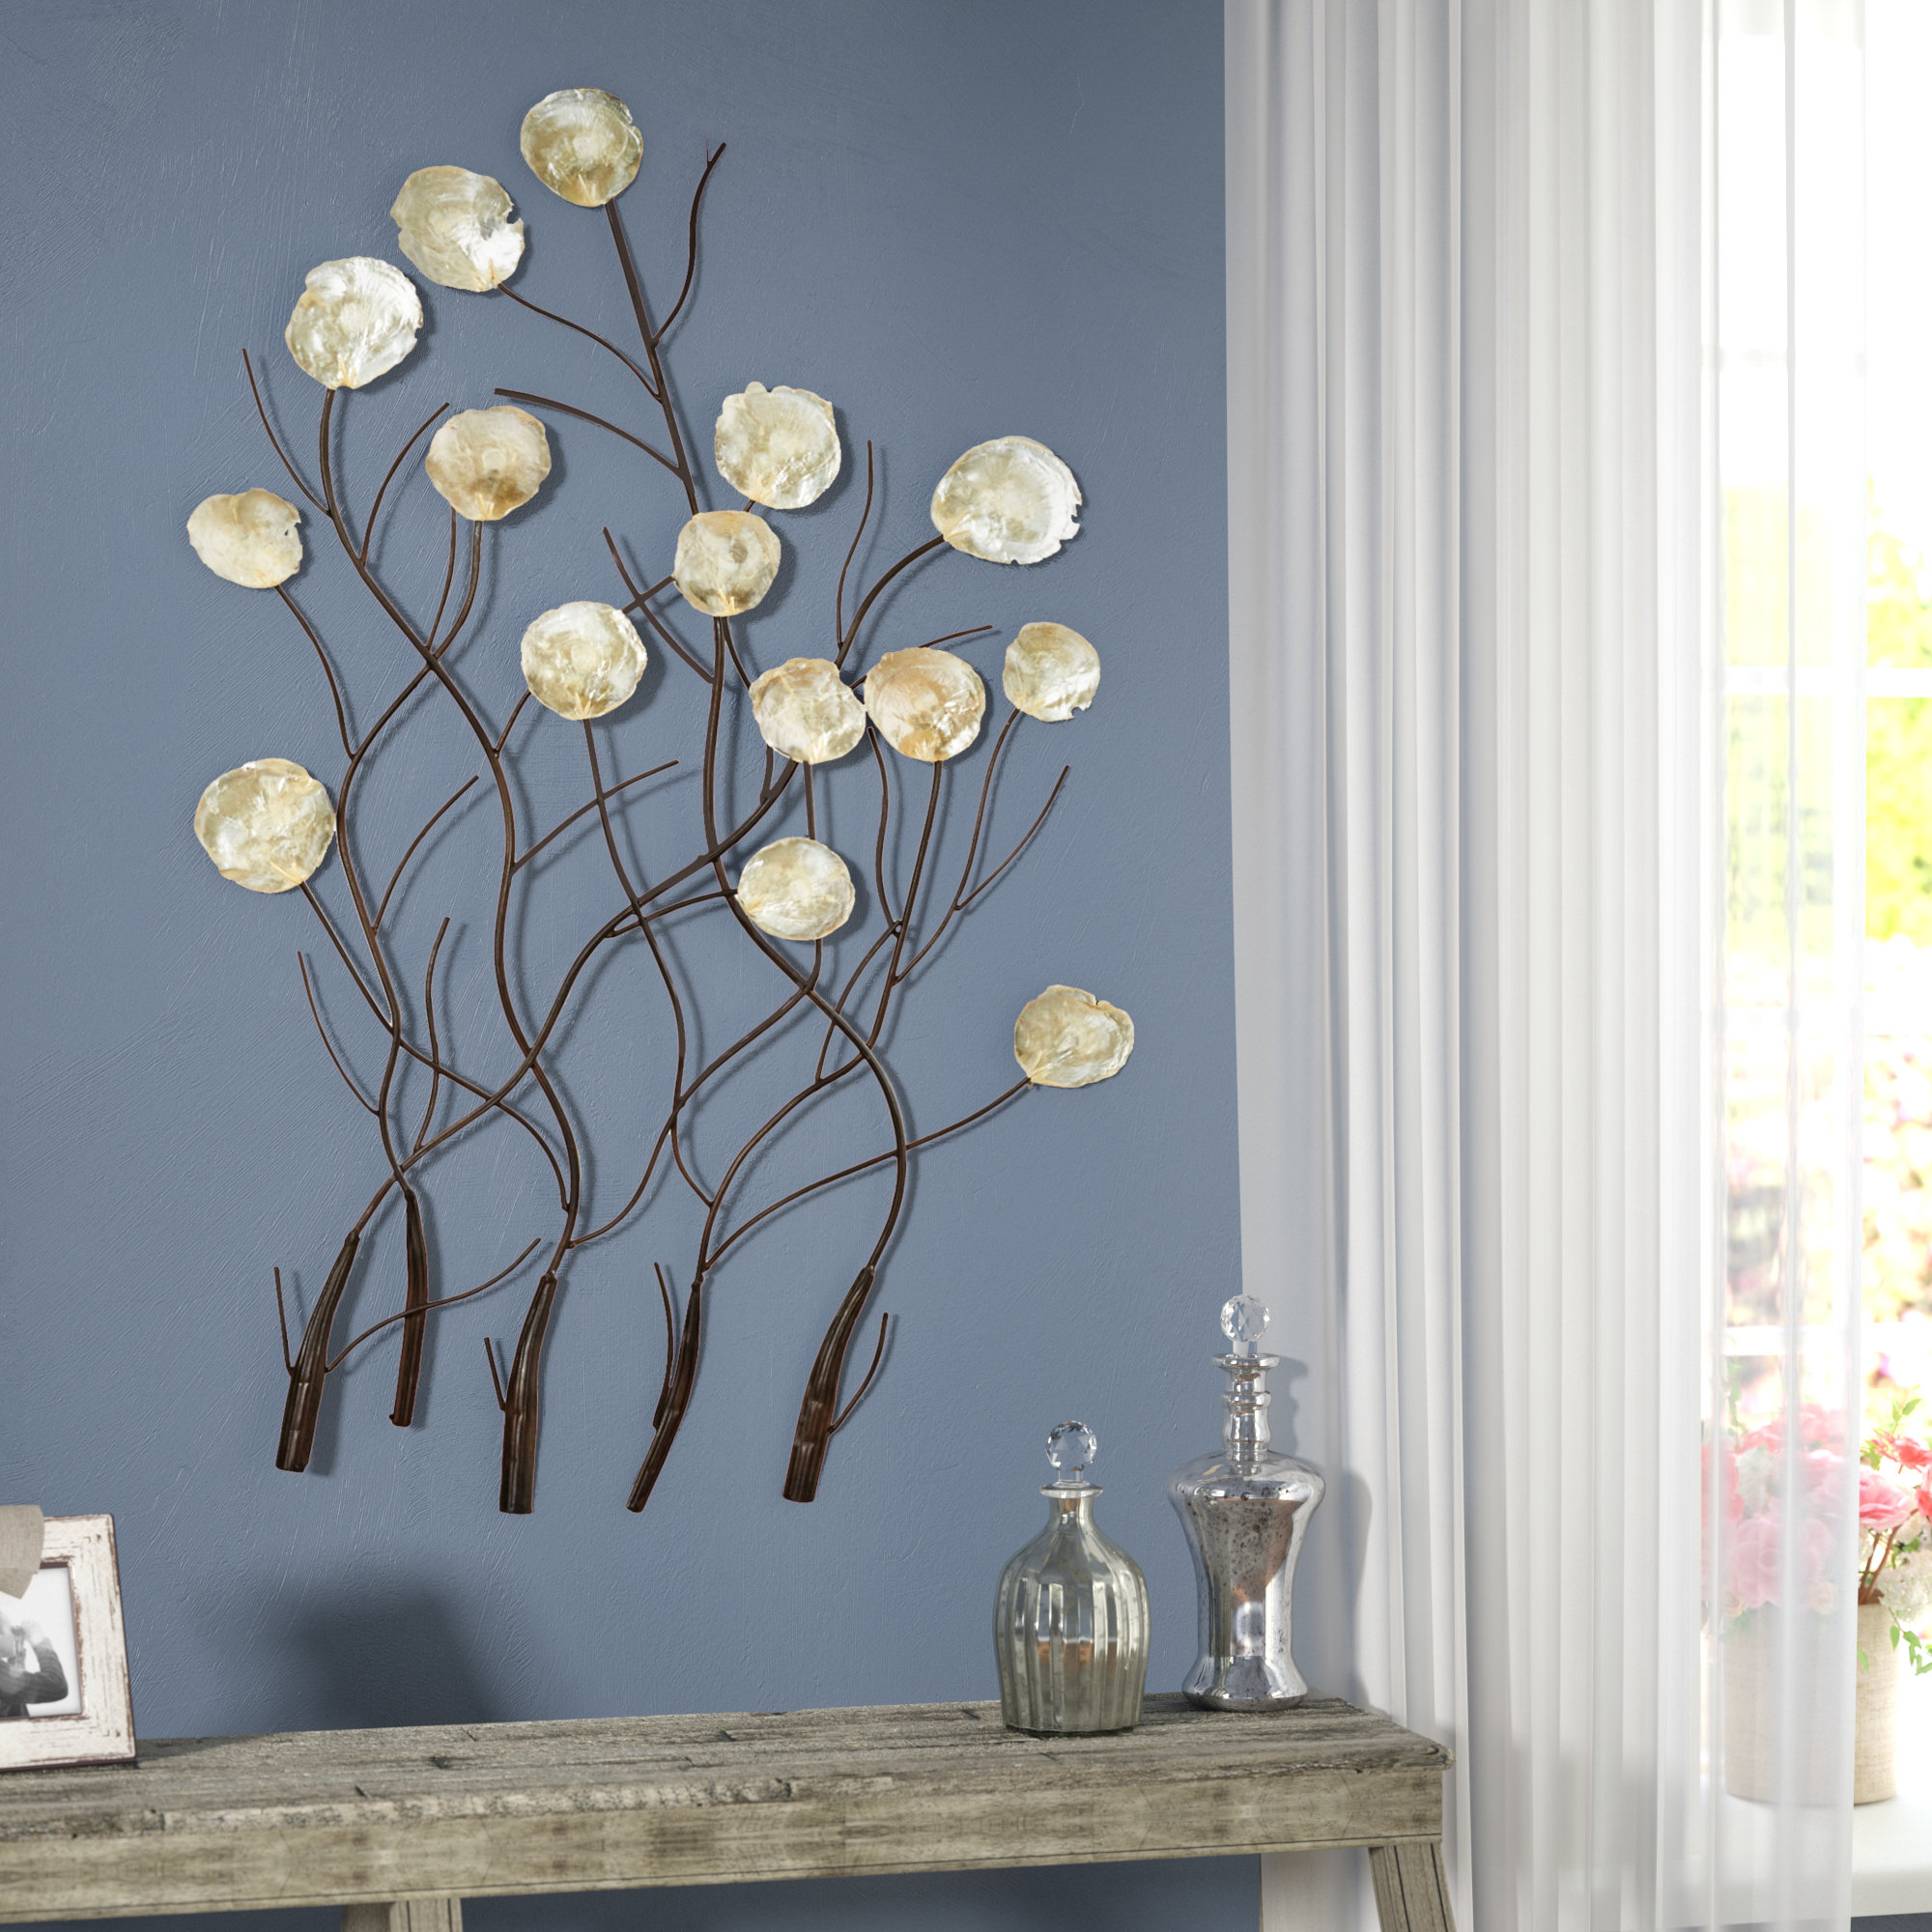 Wayfair Within Most Recent Tree Shell Leaves Sculpture Wall Decor (View 7 of 20)